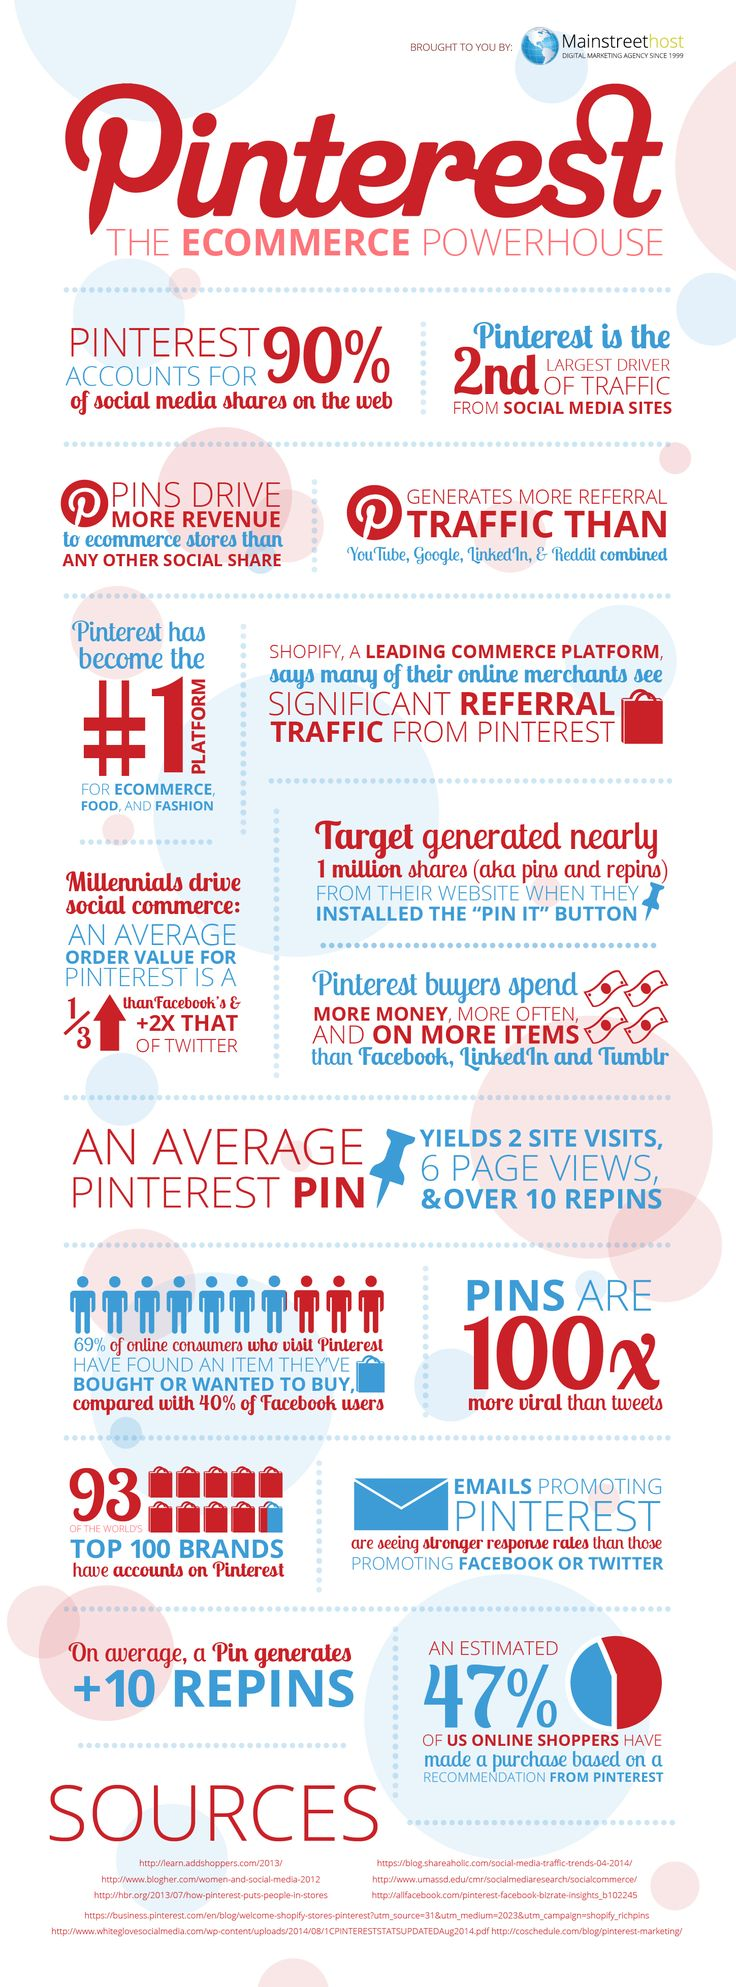 If You Aren't on Pinterest, You Are Losing Sales | Social Media Today